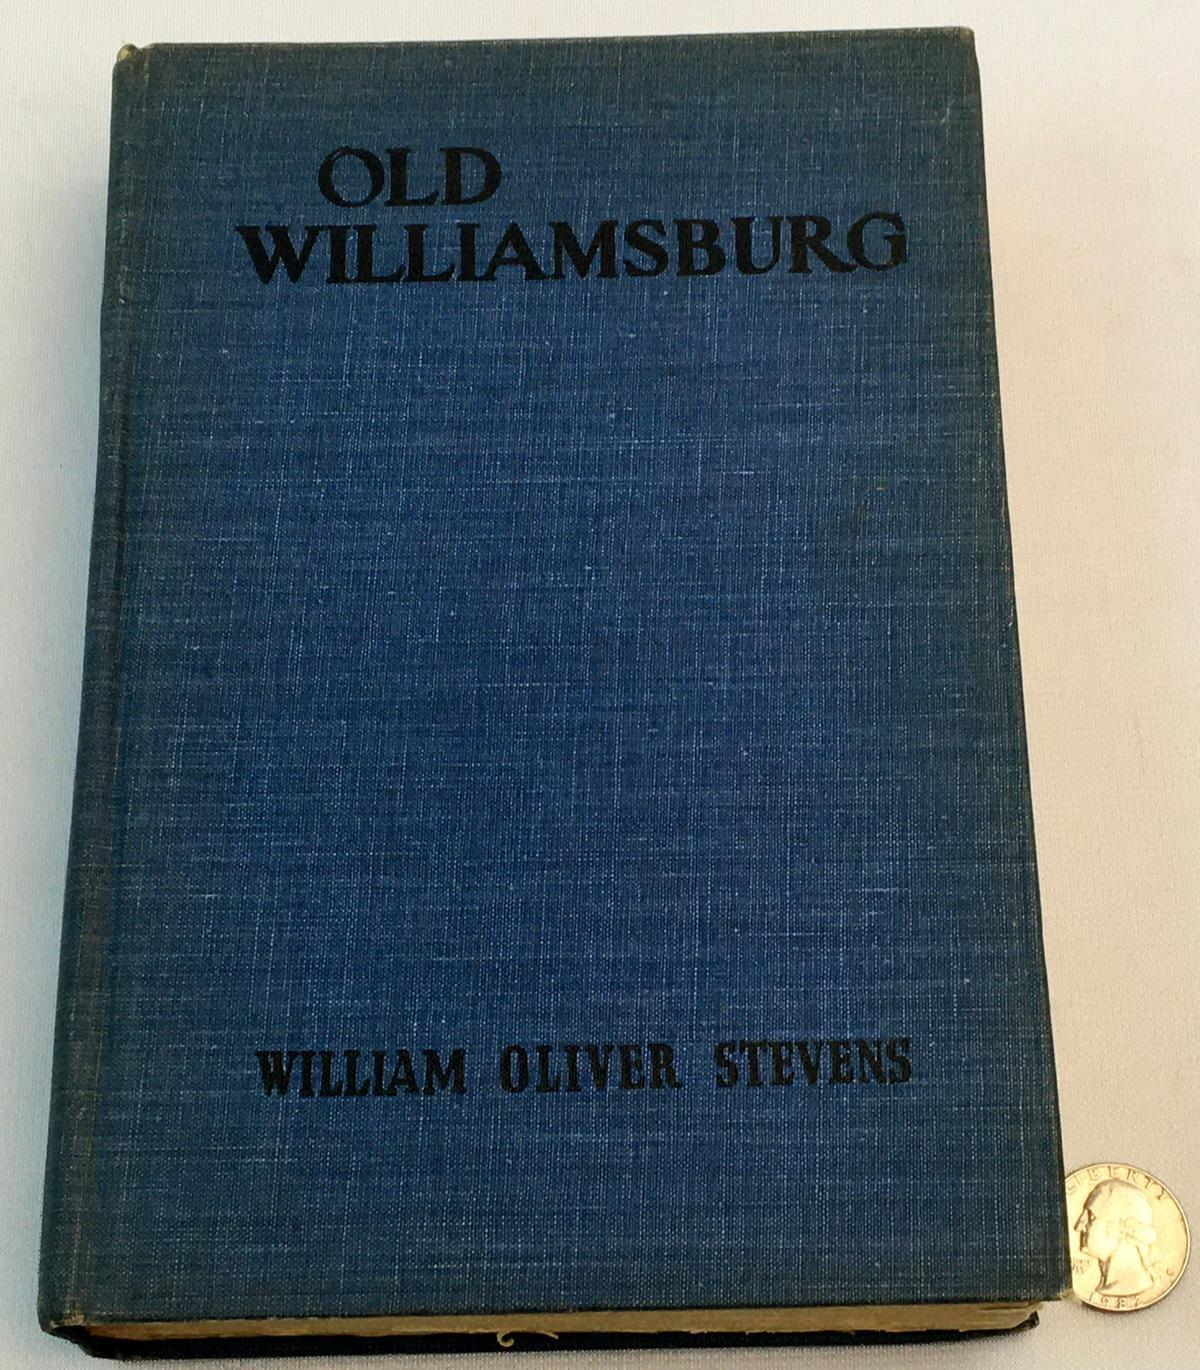 1941 Old Williamsburg and Her Neighbors by William Oliver Stevens ILLUSTRATED